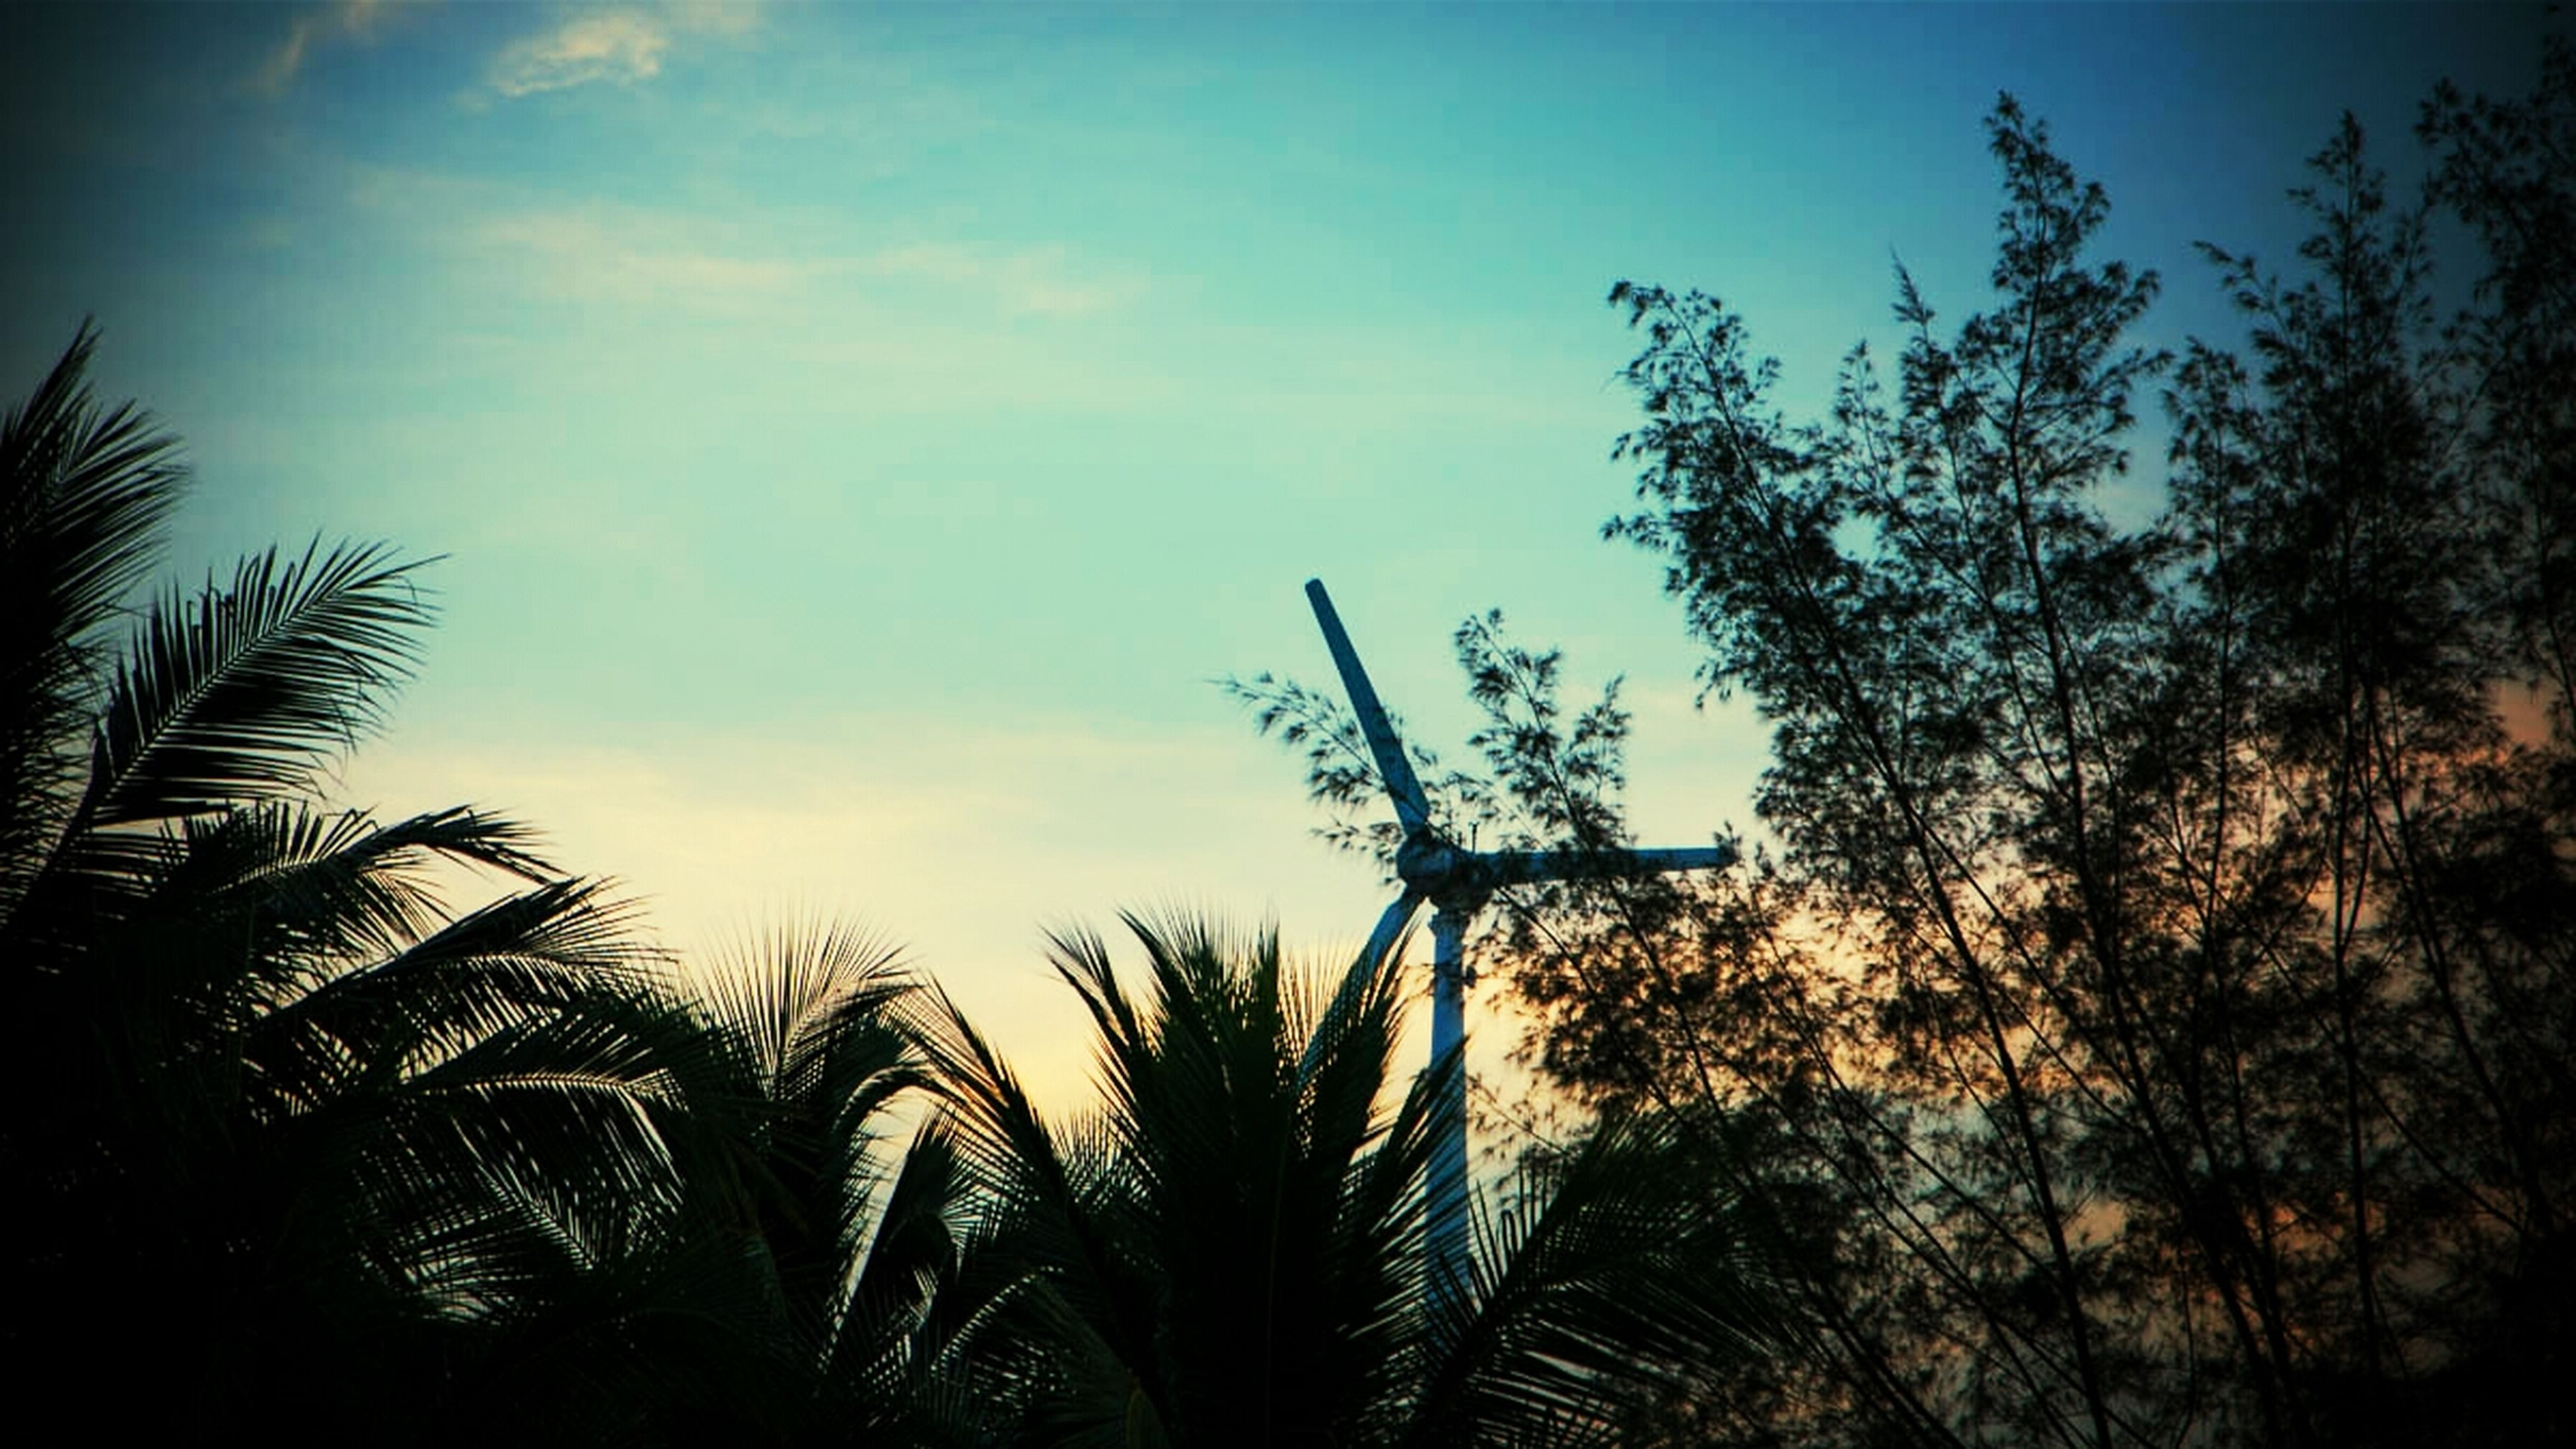 low angle view, growth, sky, silhouette, sunset, palm tree, tree, nature, cloud - sky, beauty in nature, plant, tranquility, cloud, dusk, outdoors, no people, leaf, scenics, sunlight, branch